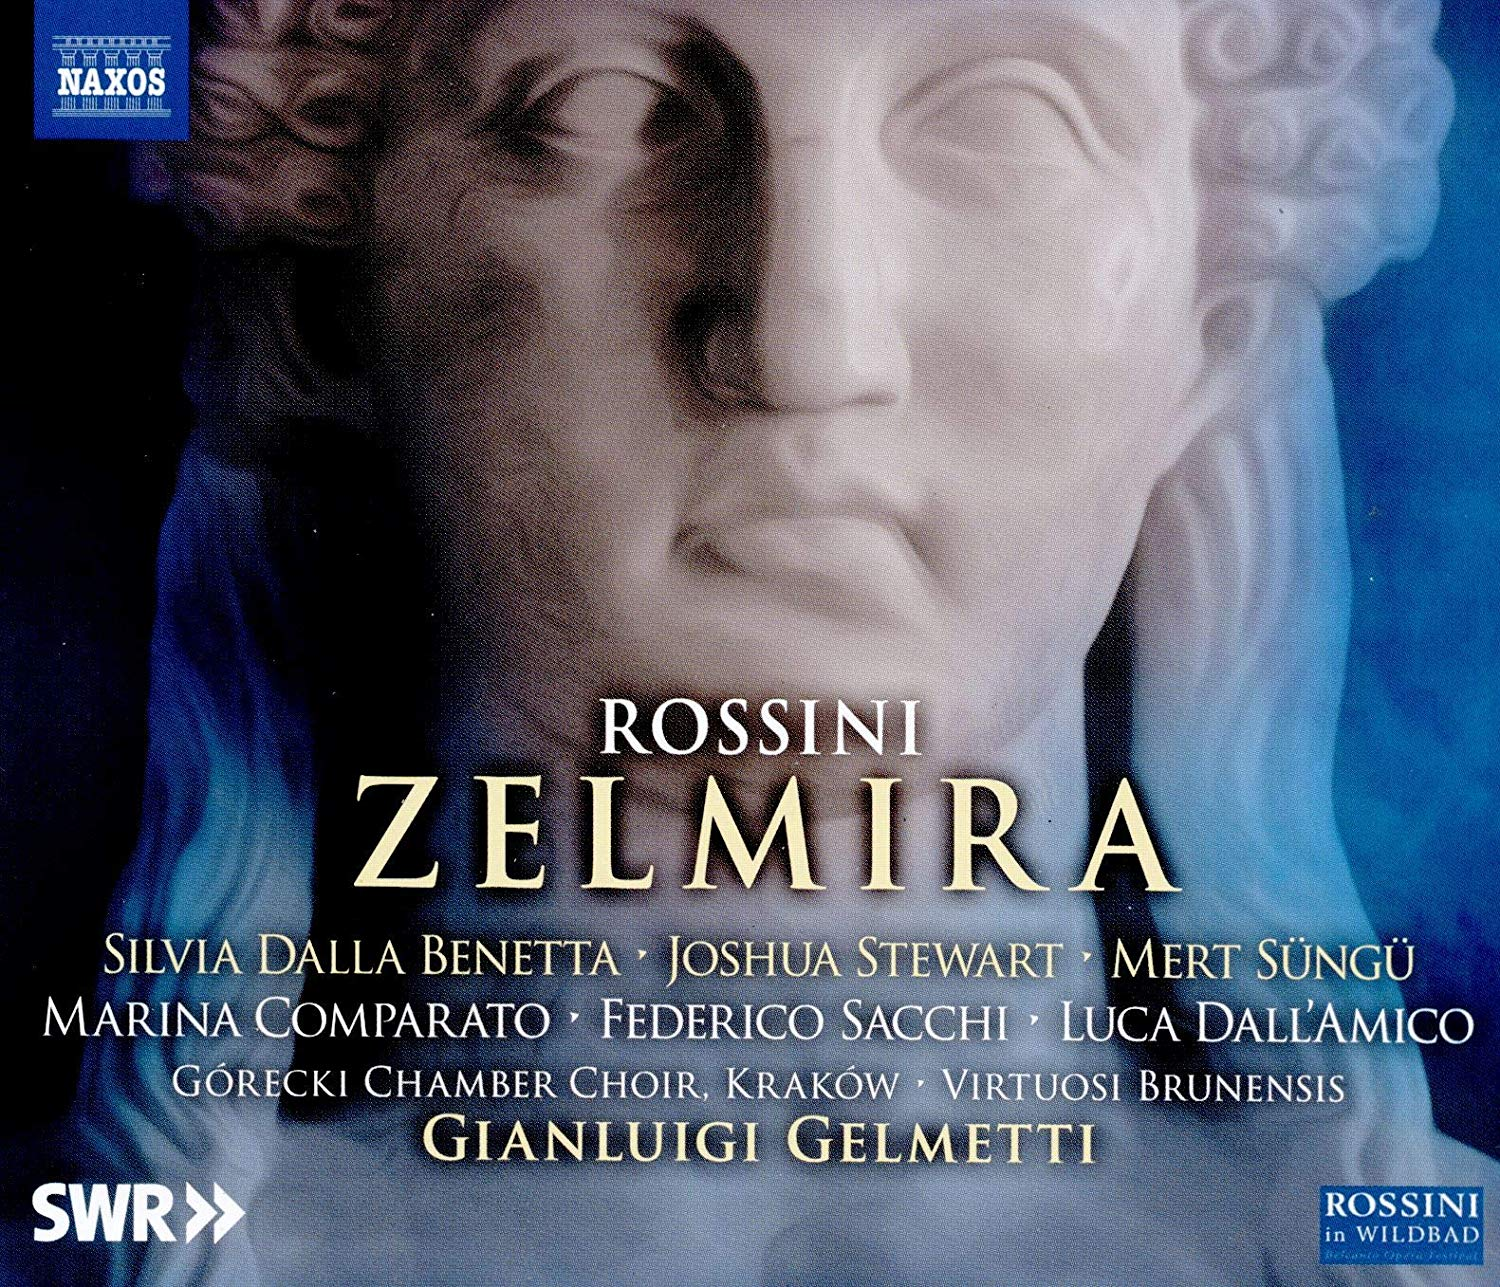 Review of ROSSINI Zelmira (Gelmetti)